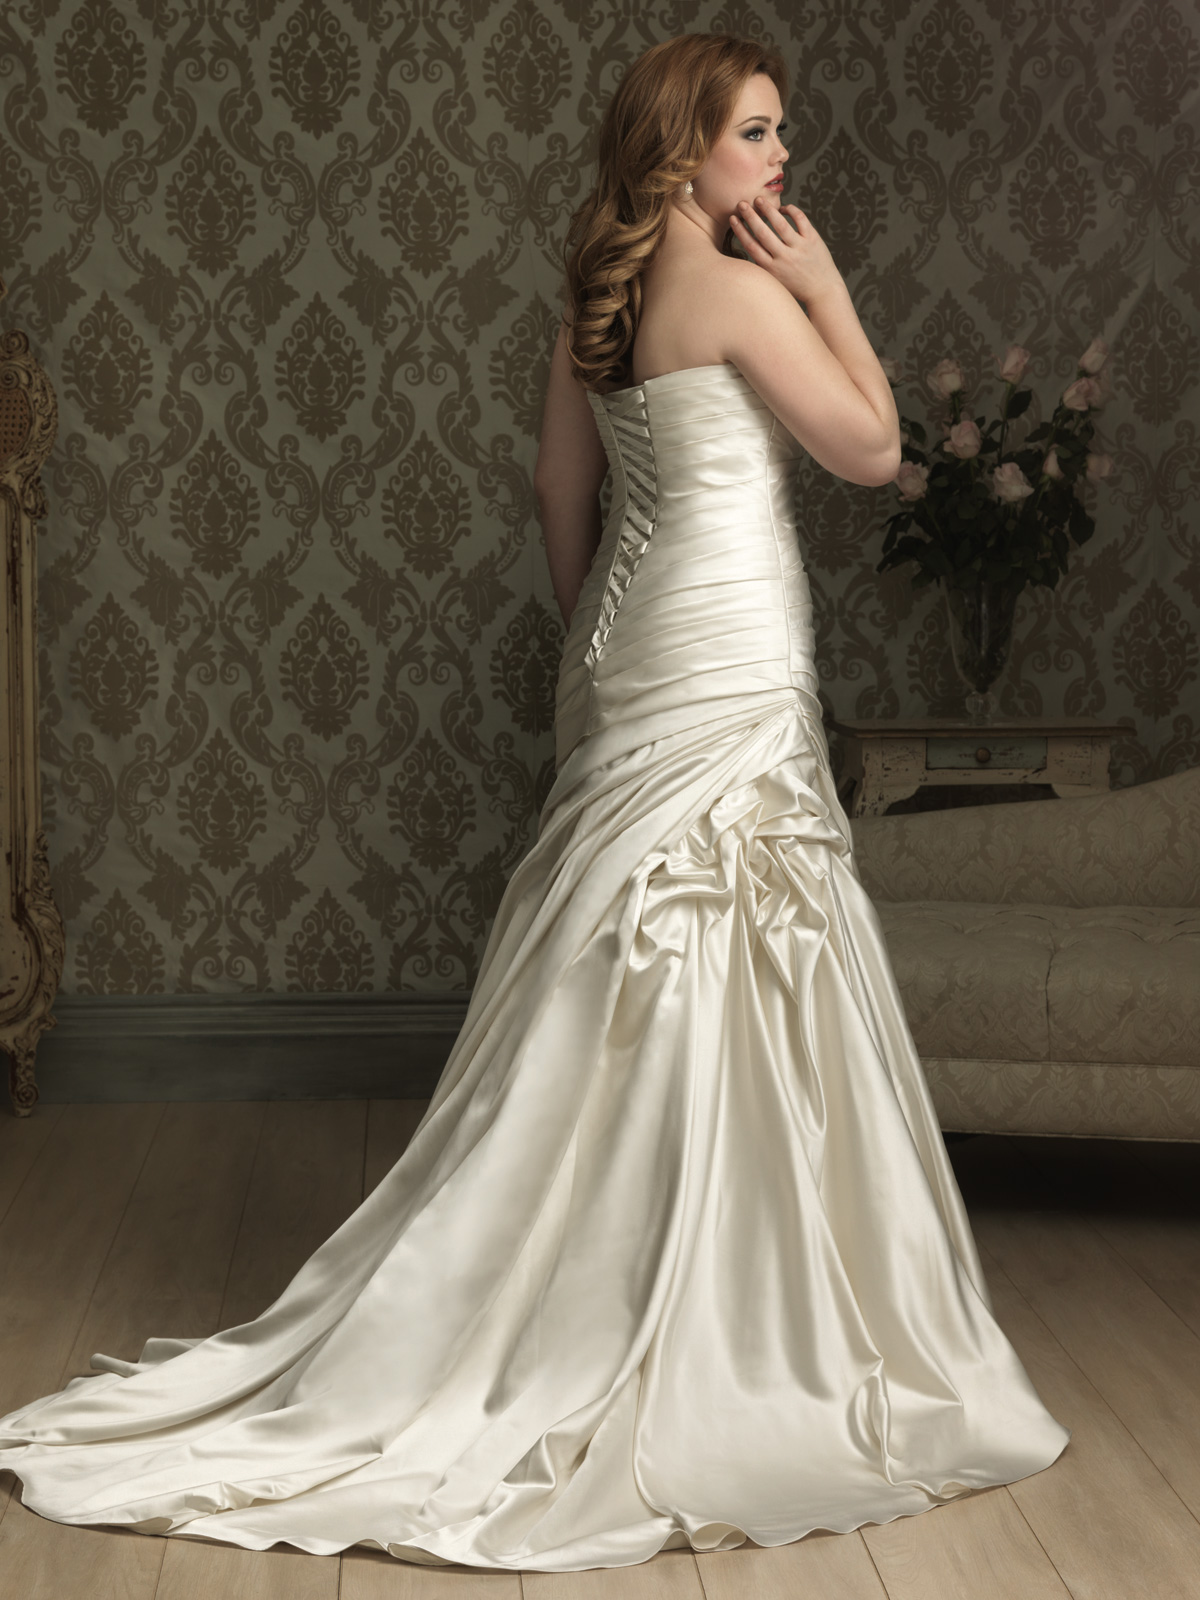 Plus Size Wedding Dress Allure W284 DimitraDesigns